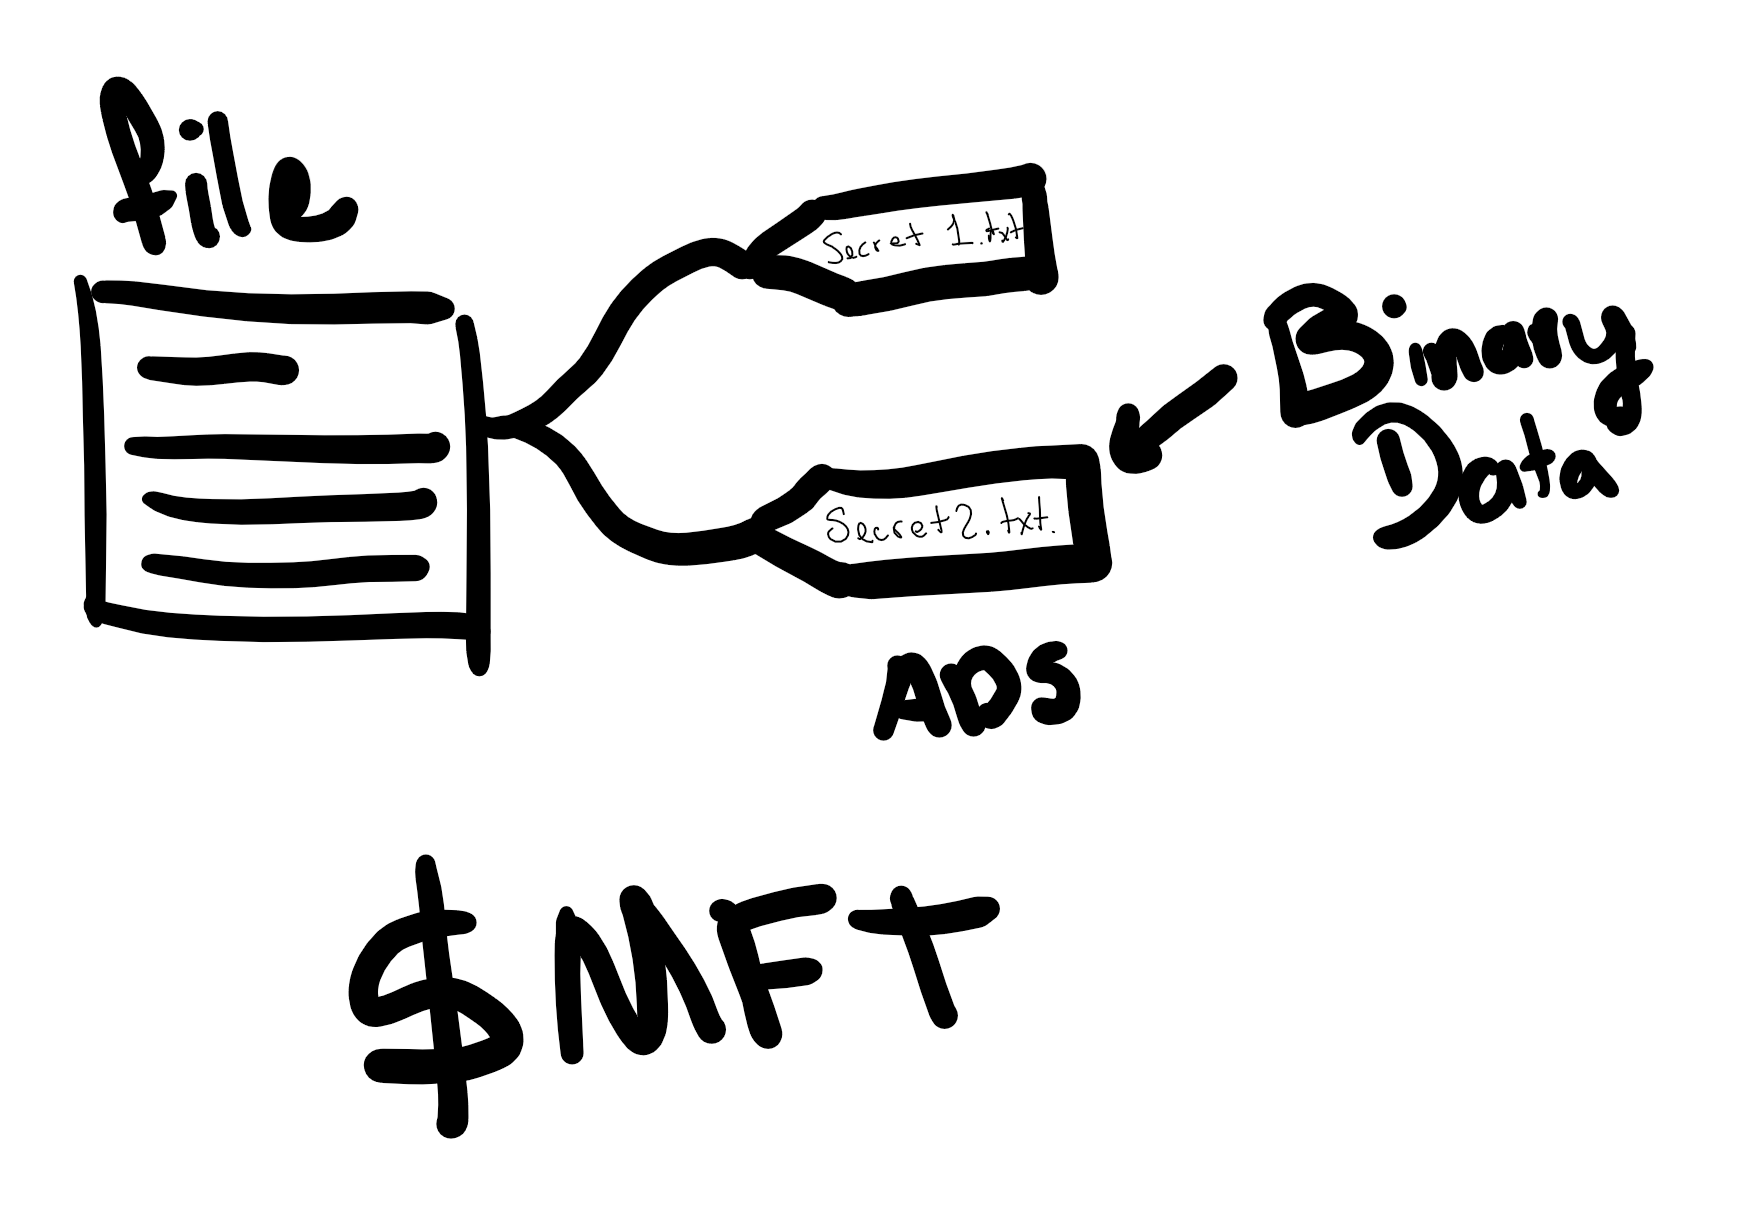 A picture with a visual representation of the ads